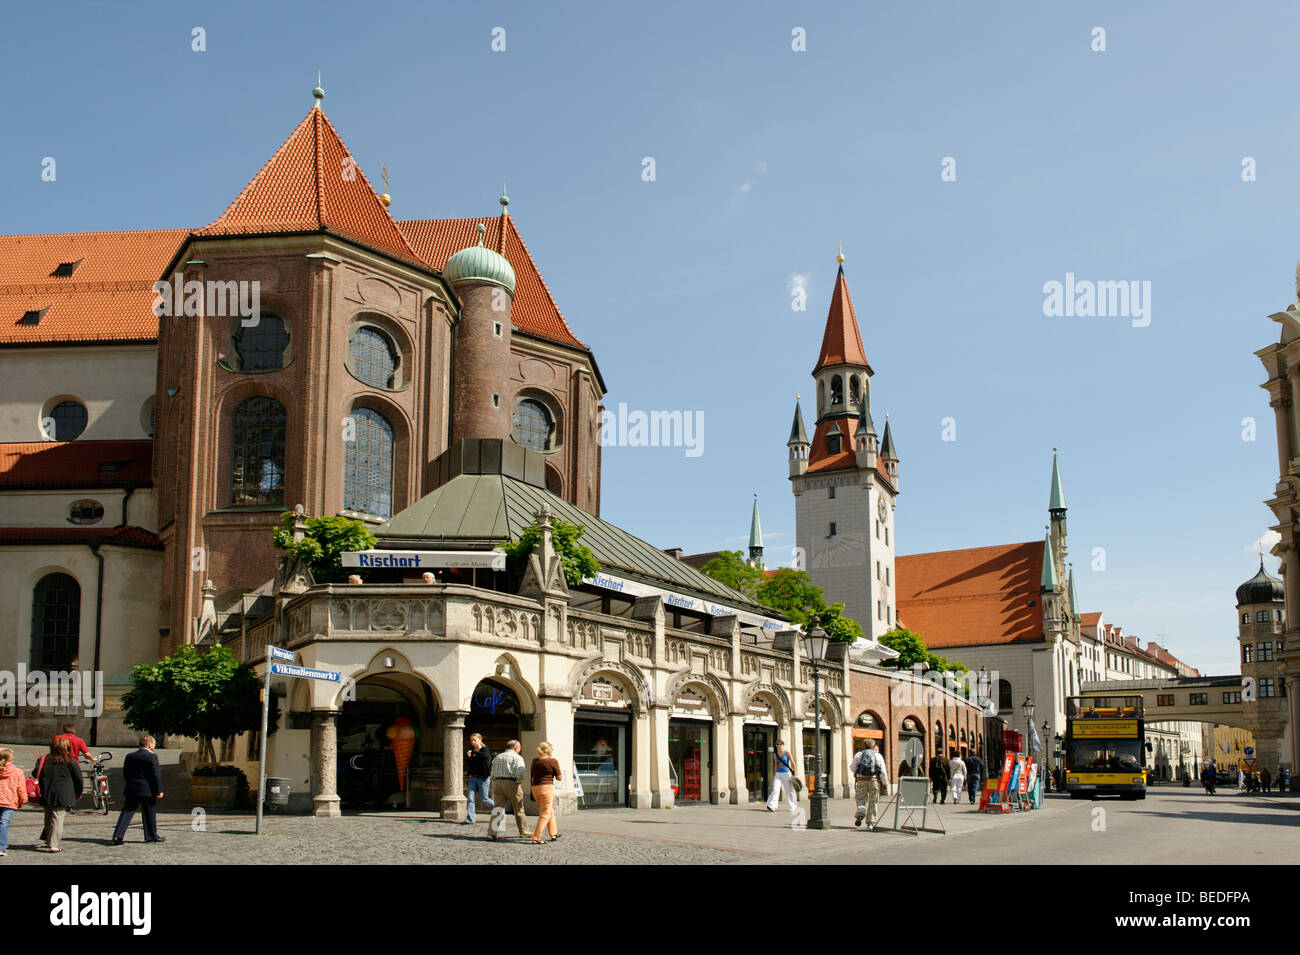 Cafe Rischart on Viktualienmarkt Square with the Alter Peter Tower, Munich, Bavaria, Germany, Europe - Stock Image